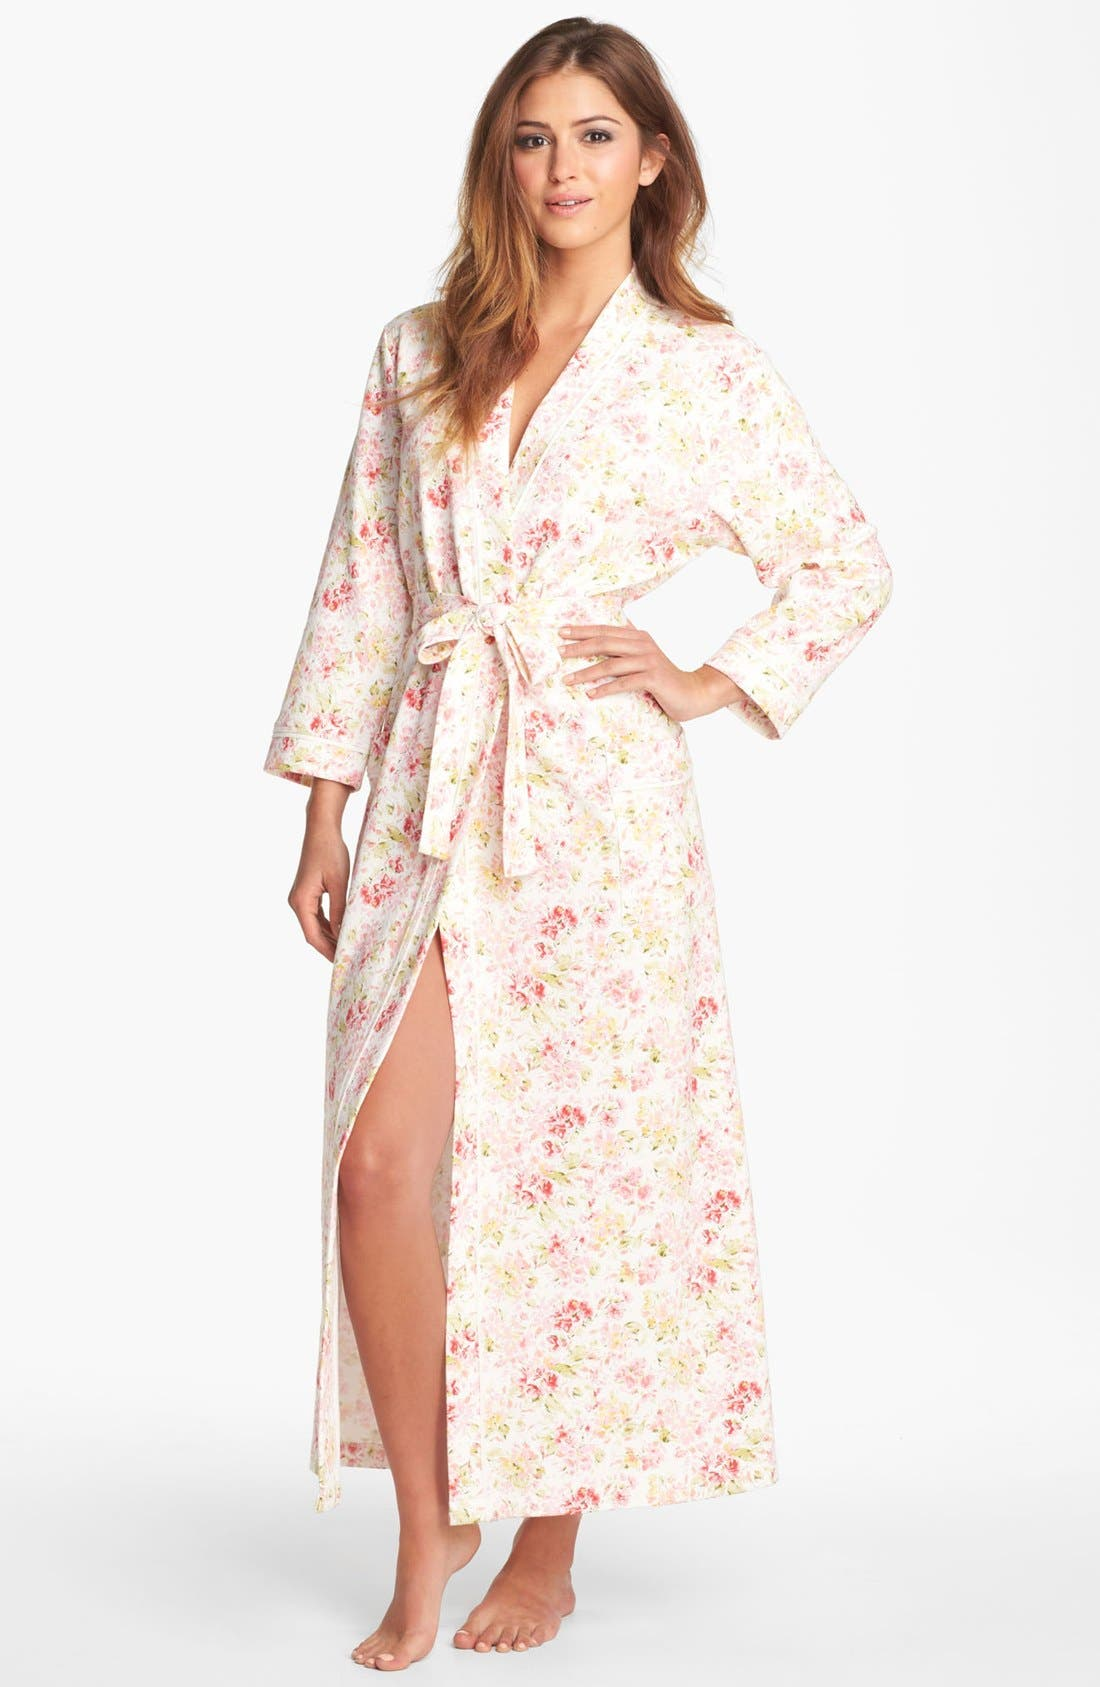 Alternate Image 1 Selected - Carole Hochman Designs 'Bloomfield Garden' Robe